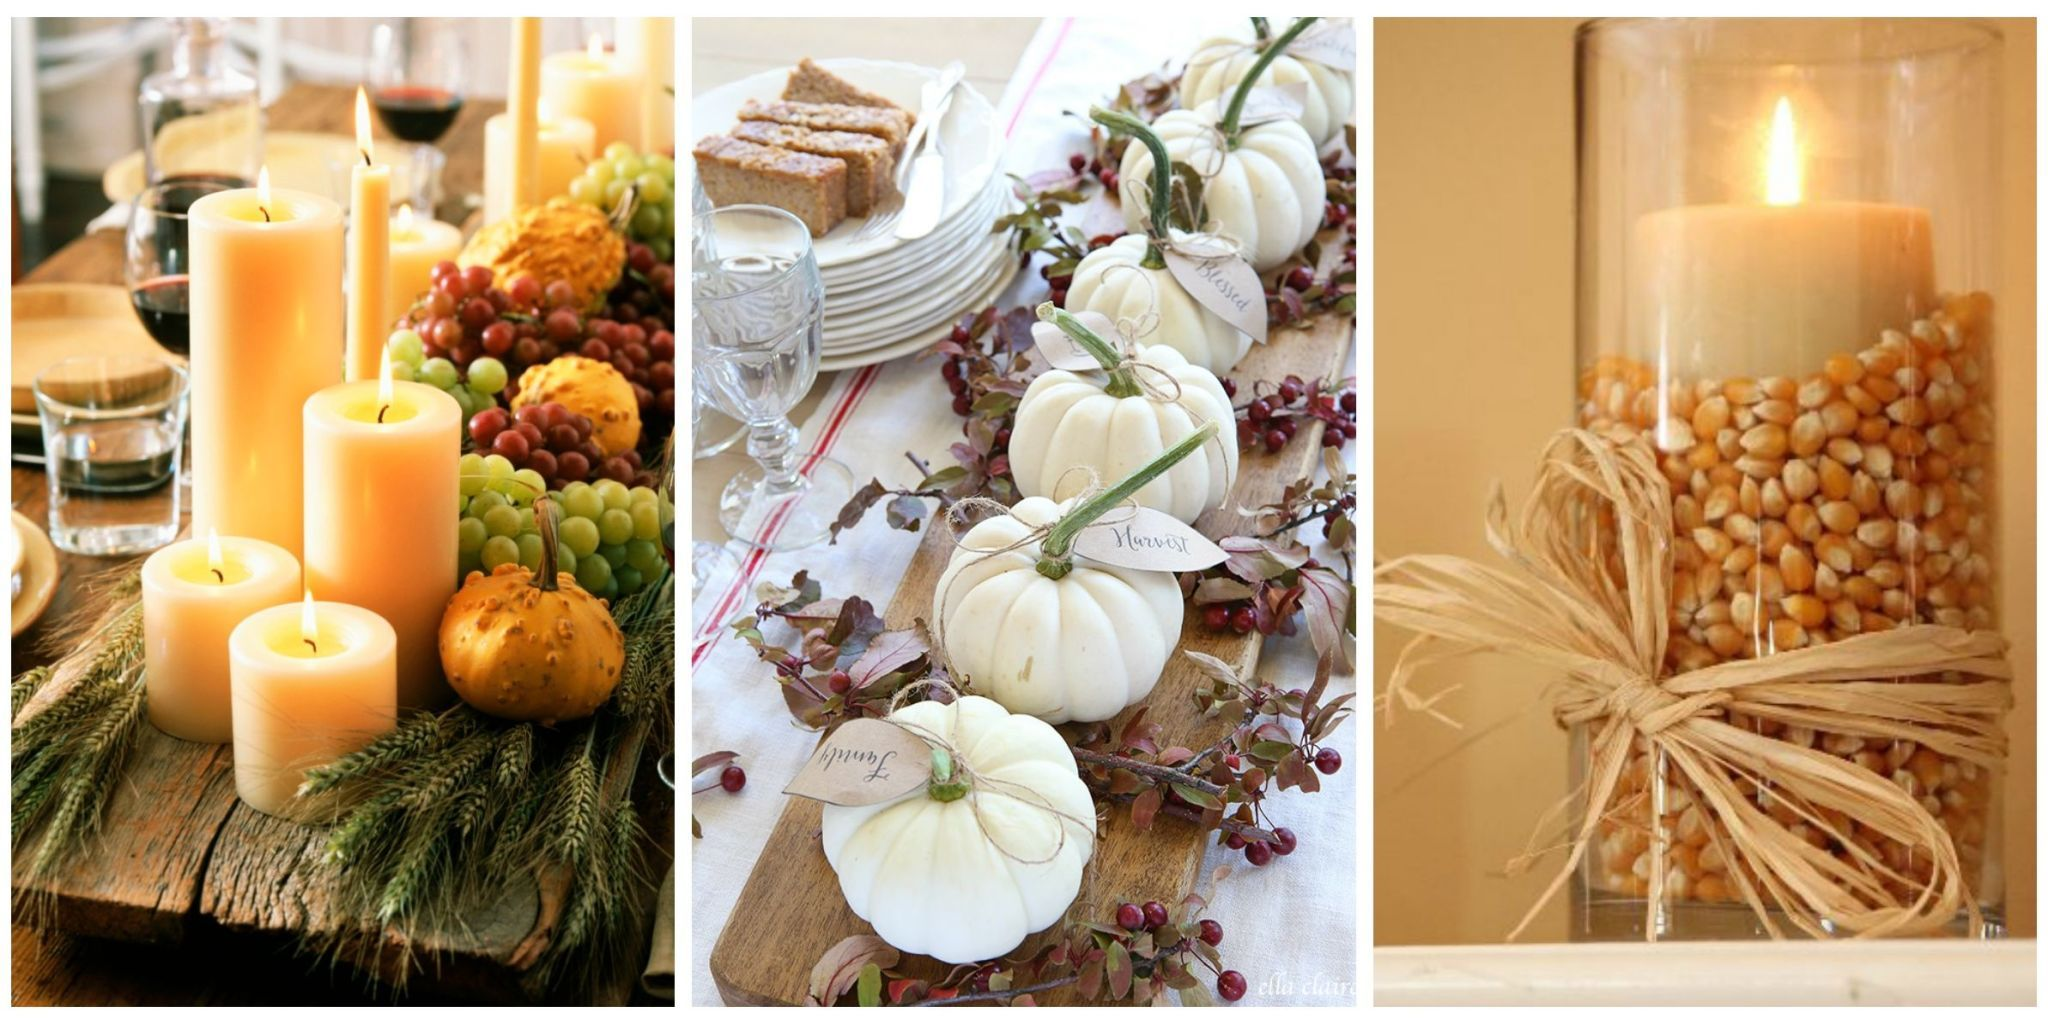 ... You Can Easily Transform Your Space Into A Harvest Inspired Haven. Just  Look To One Of The Following DIY Centerpiece Ideasu2014affordable And ...